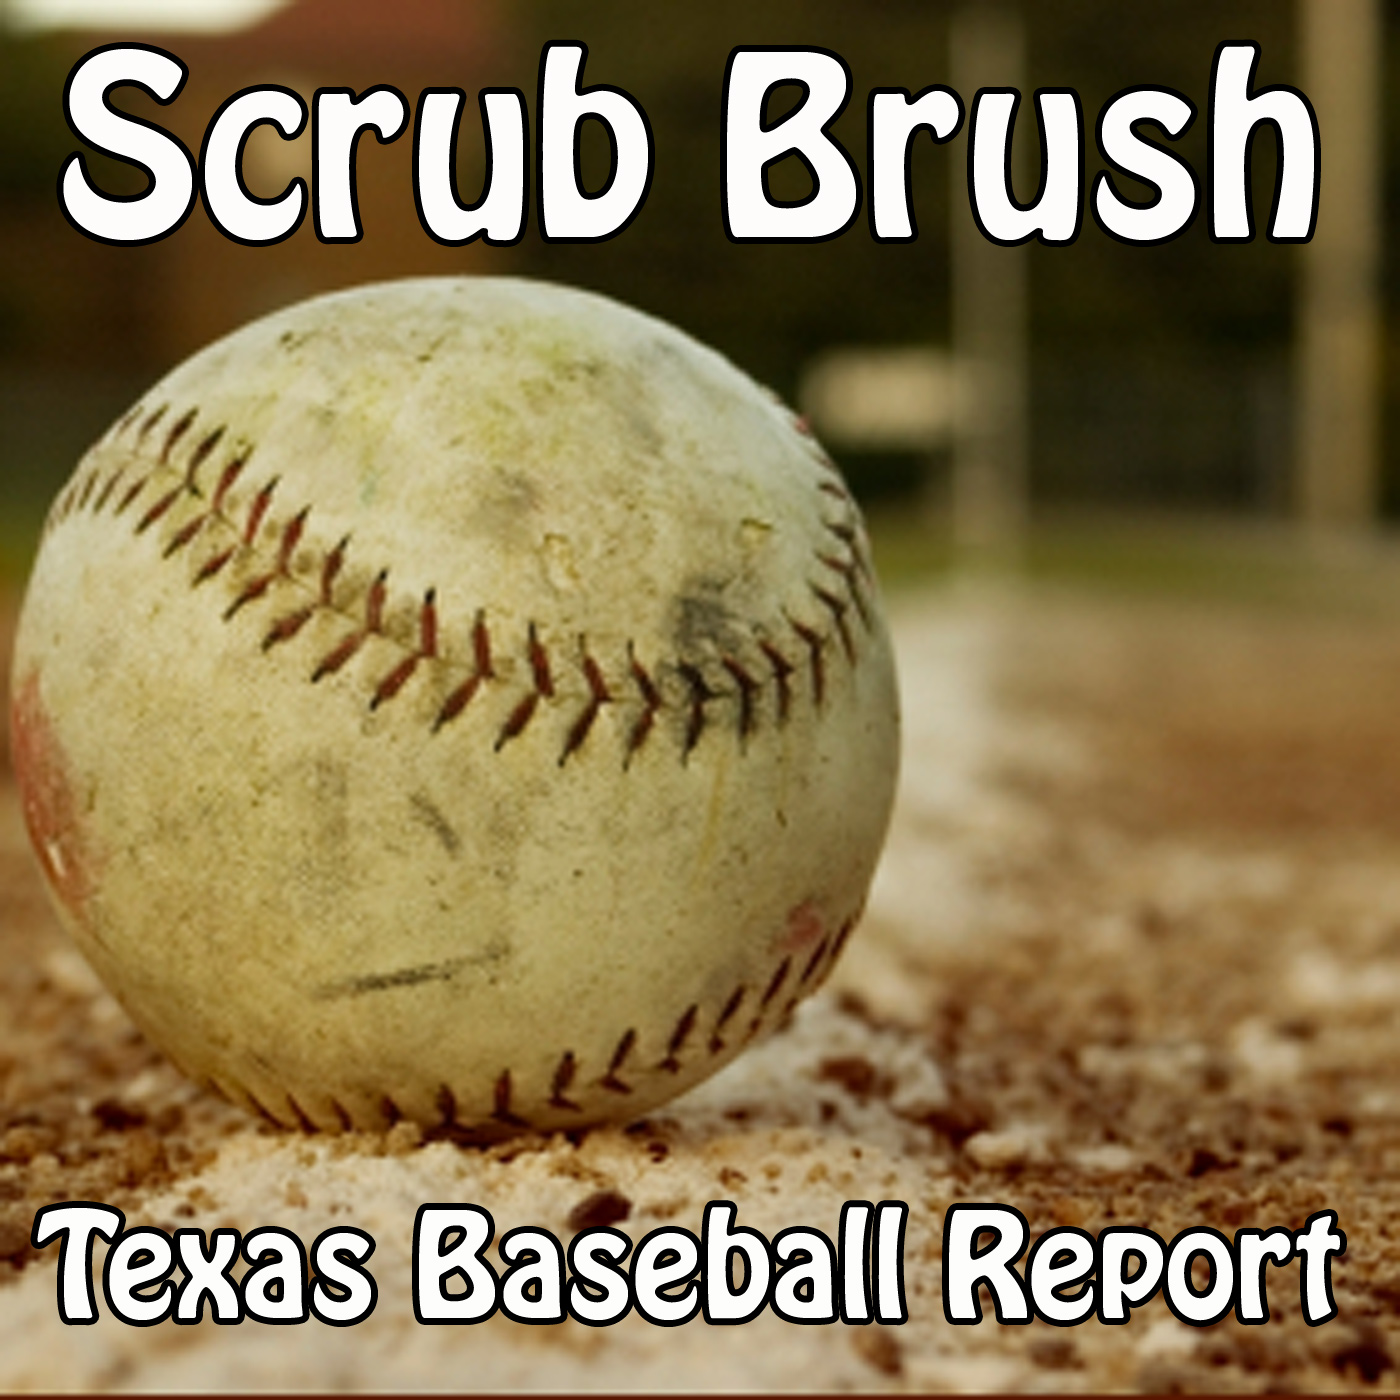 Scrub Brush Texas Baseball Report